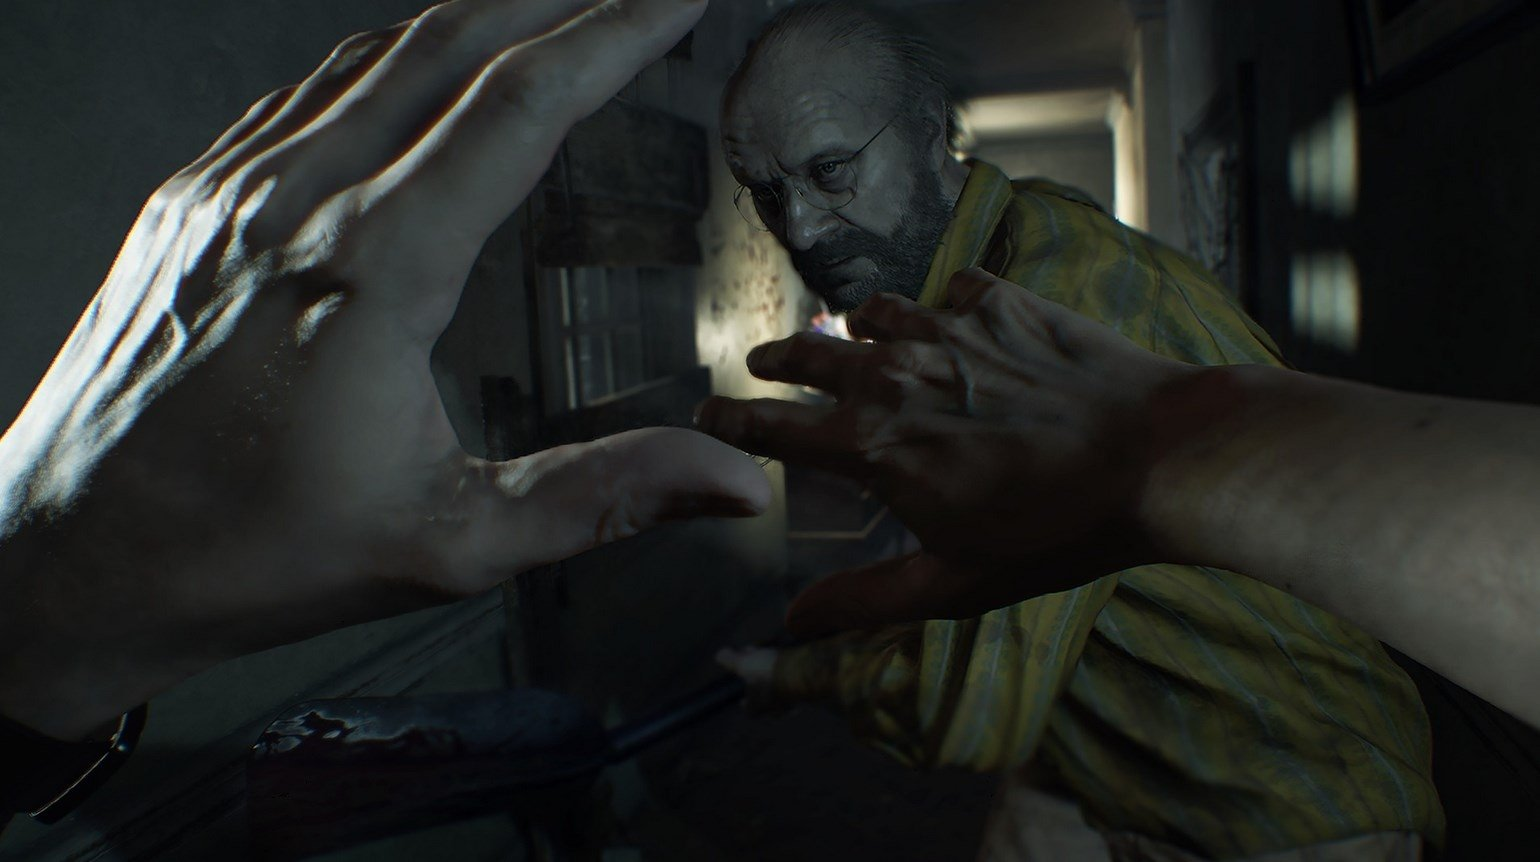 Resident Evil 7: Biohazard - Download for PC Free